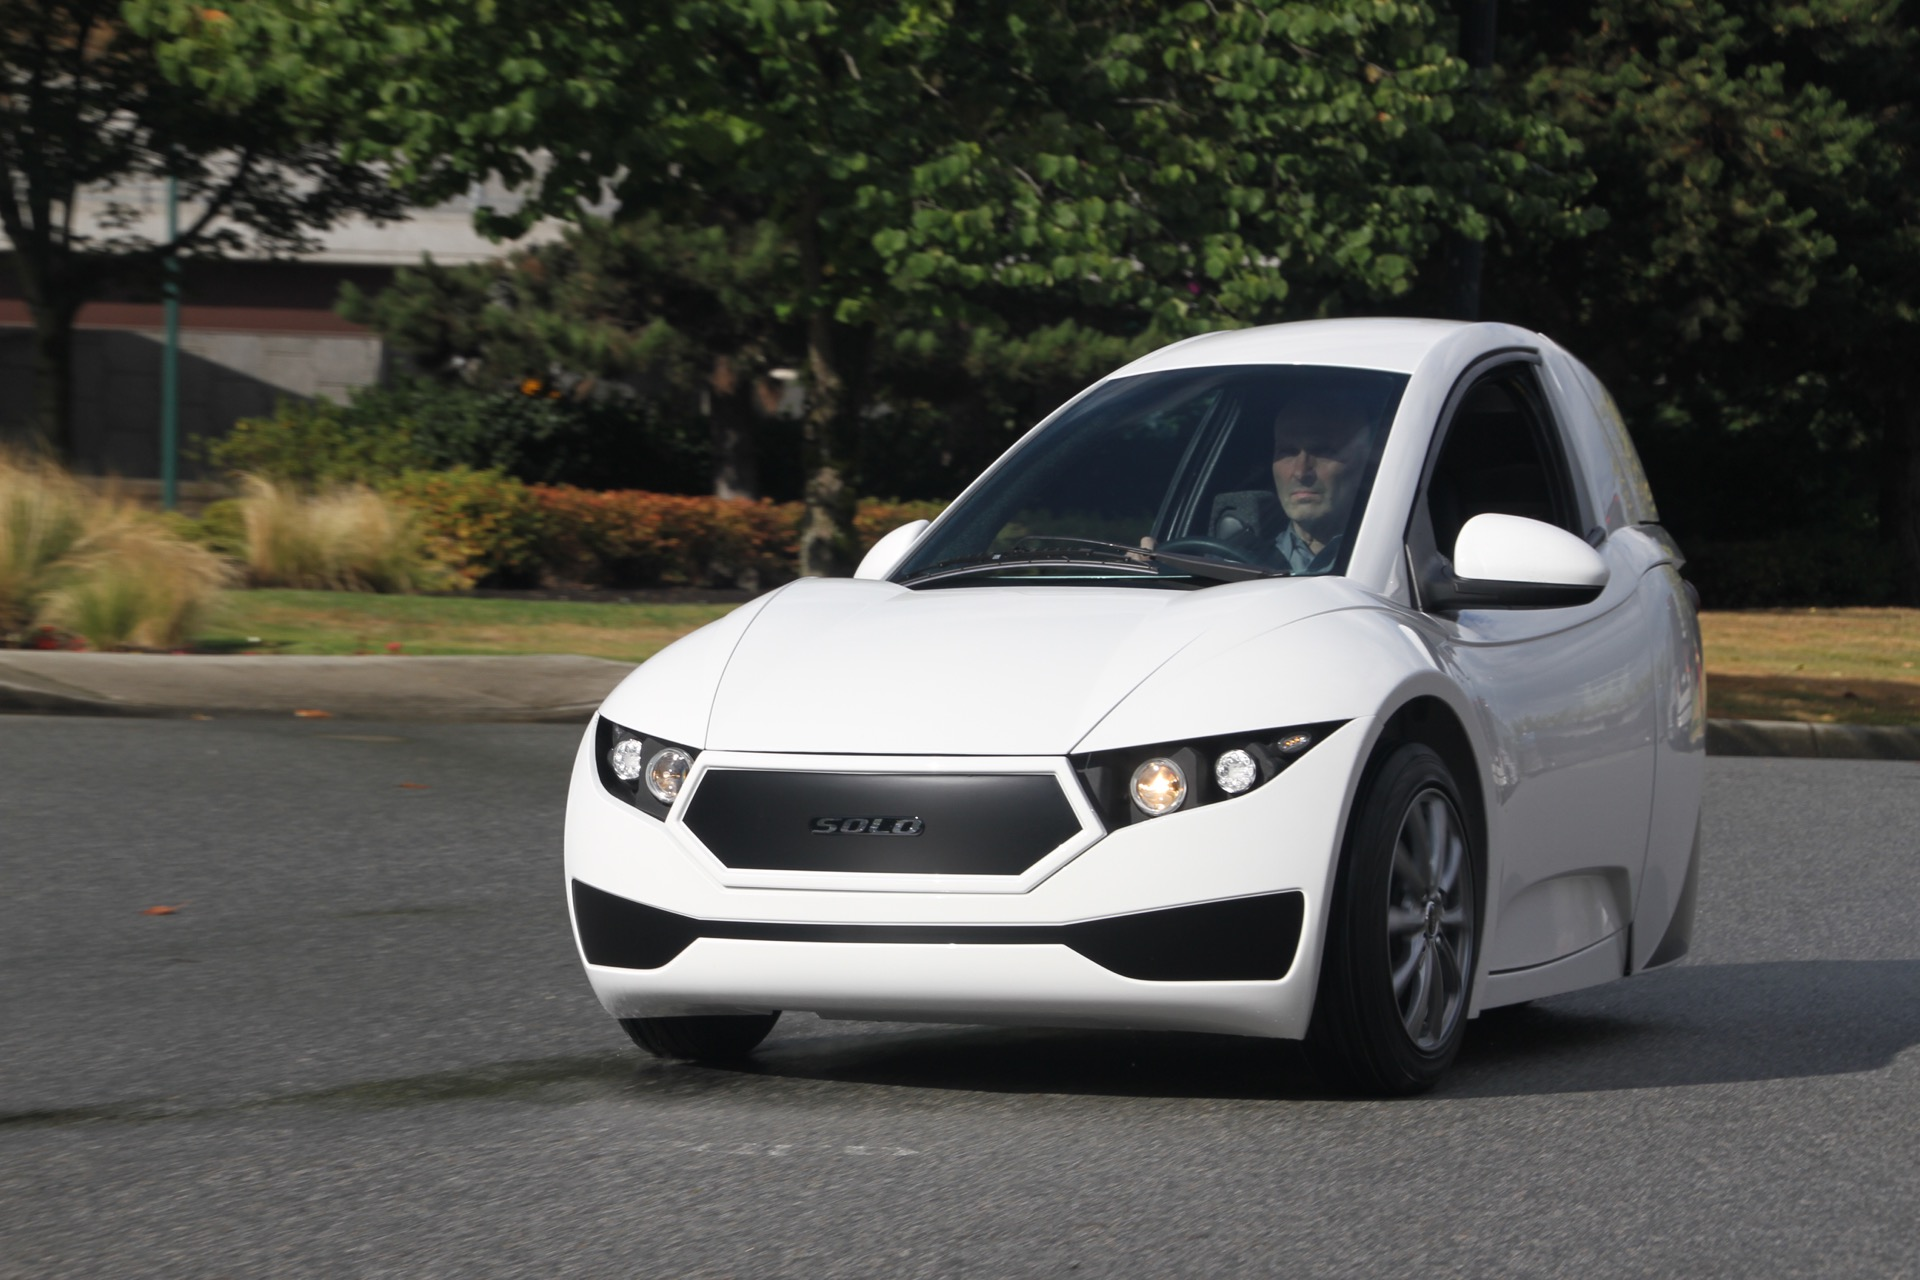 Electra Meccanica Solo Three Wheeled Electric Car Unveiled